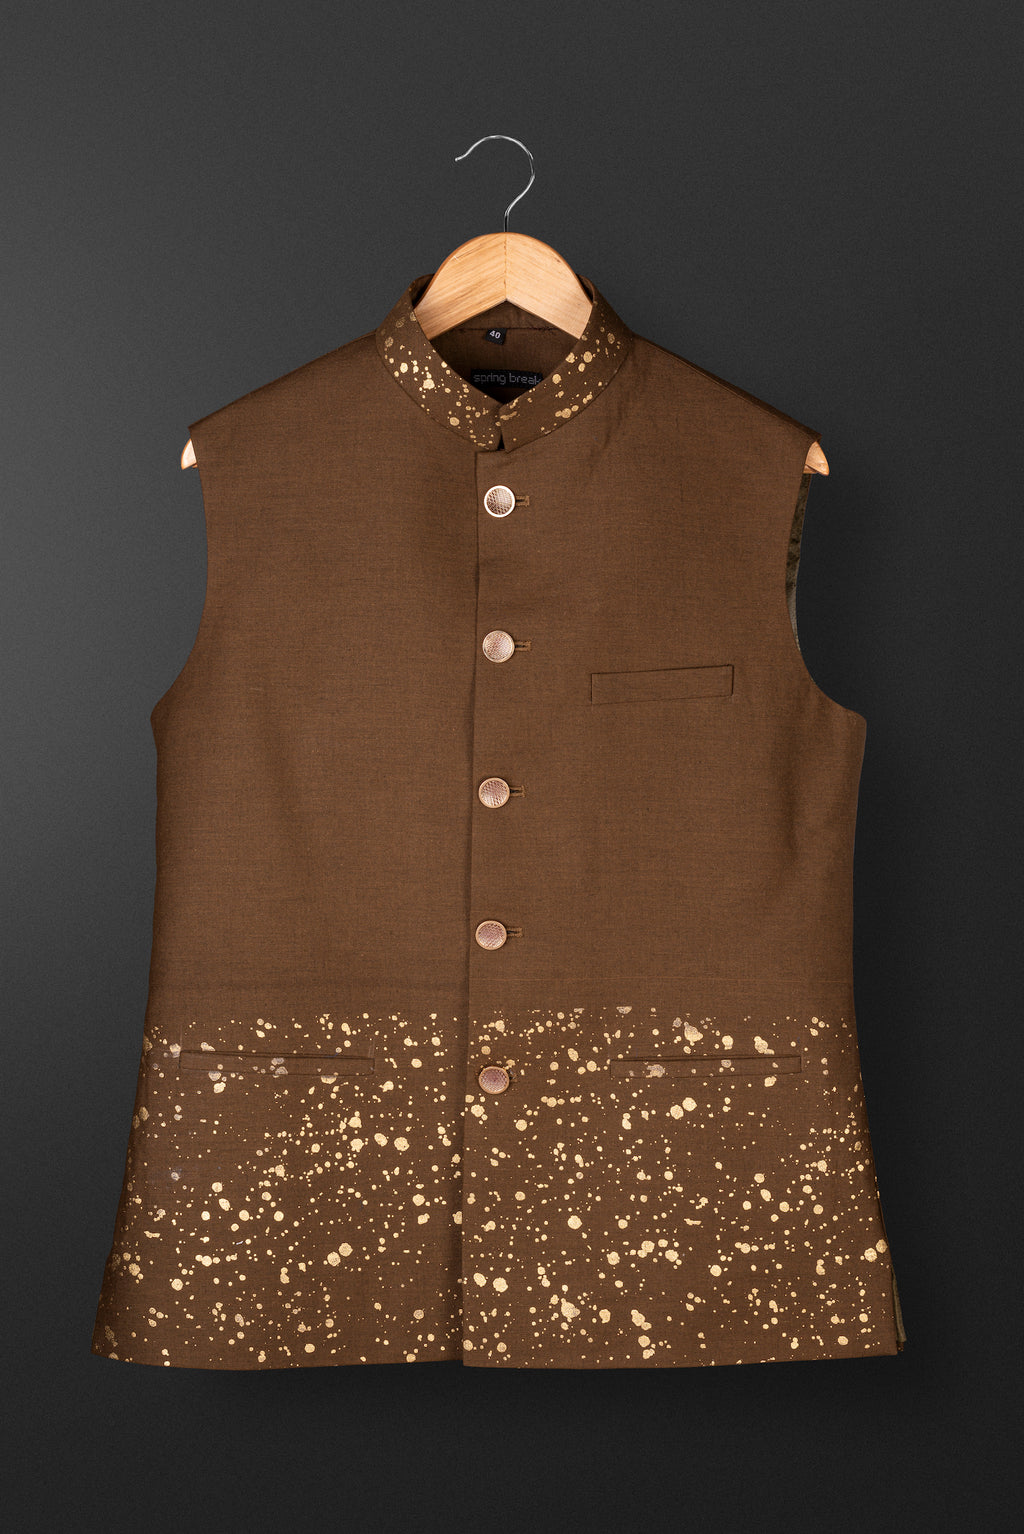 Splash of Gold Bundi Jacket - Brown